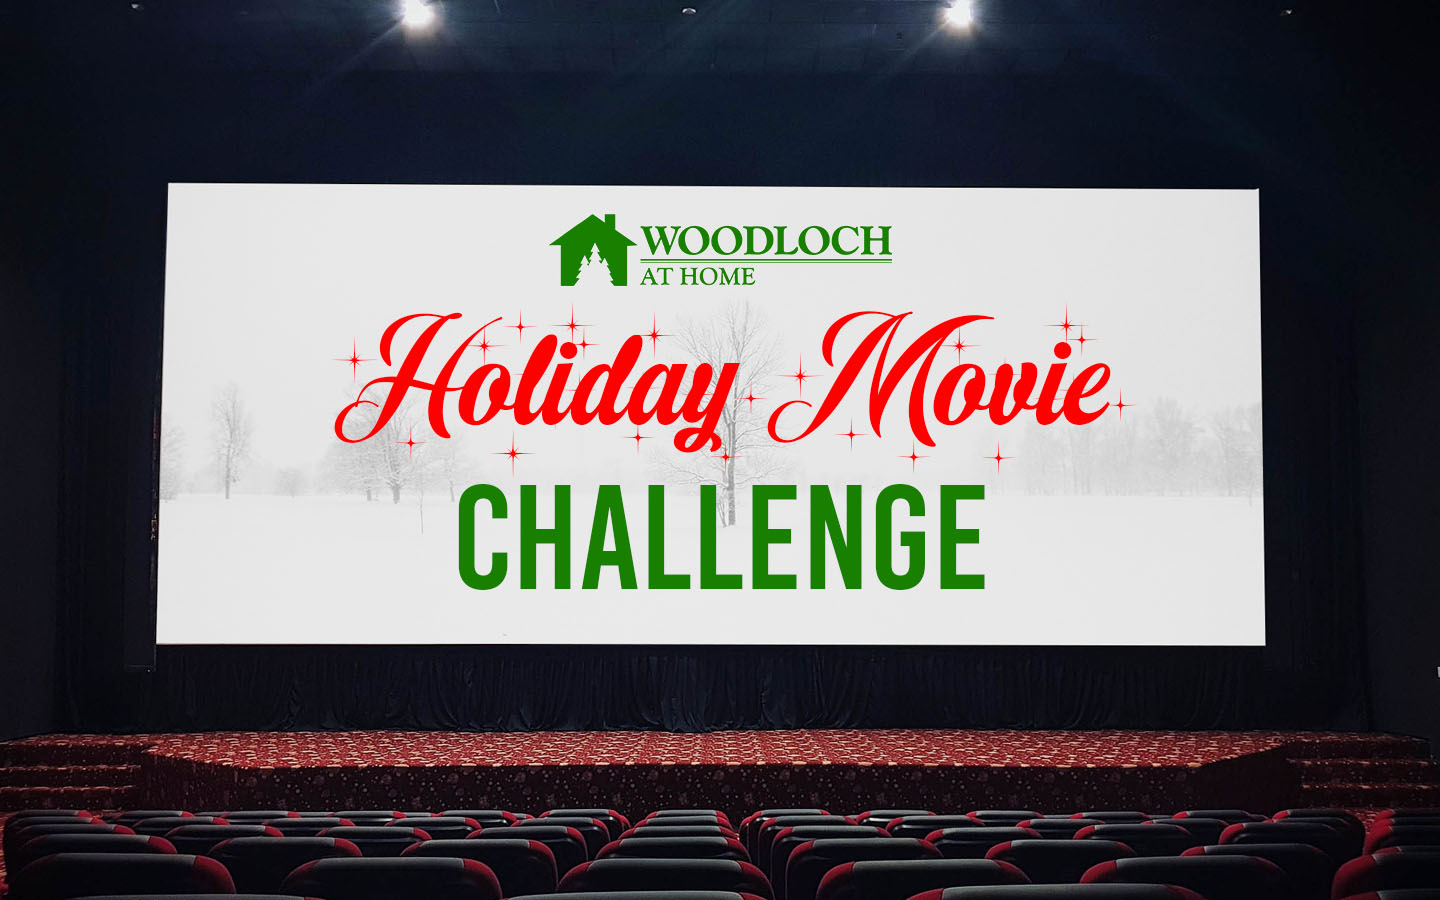 Movie theater with screen. Text: Woodloch at home, Holiday Movie Challenge